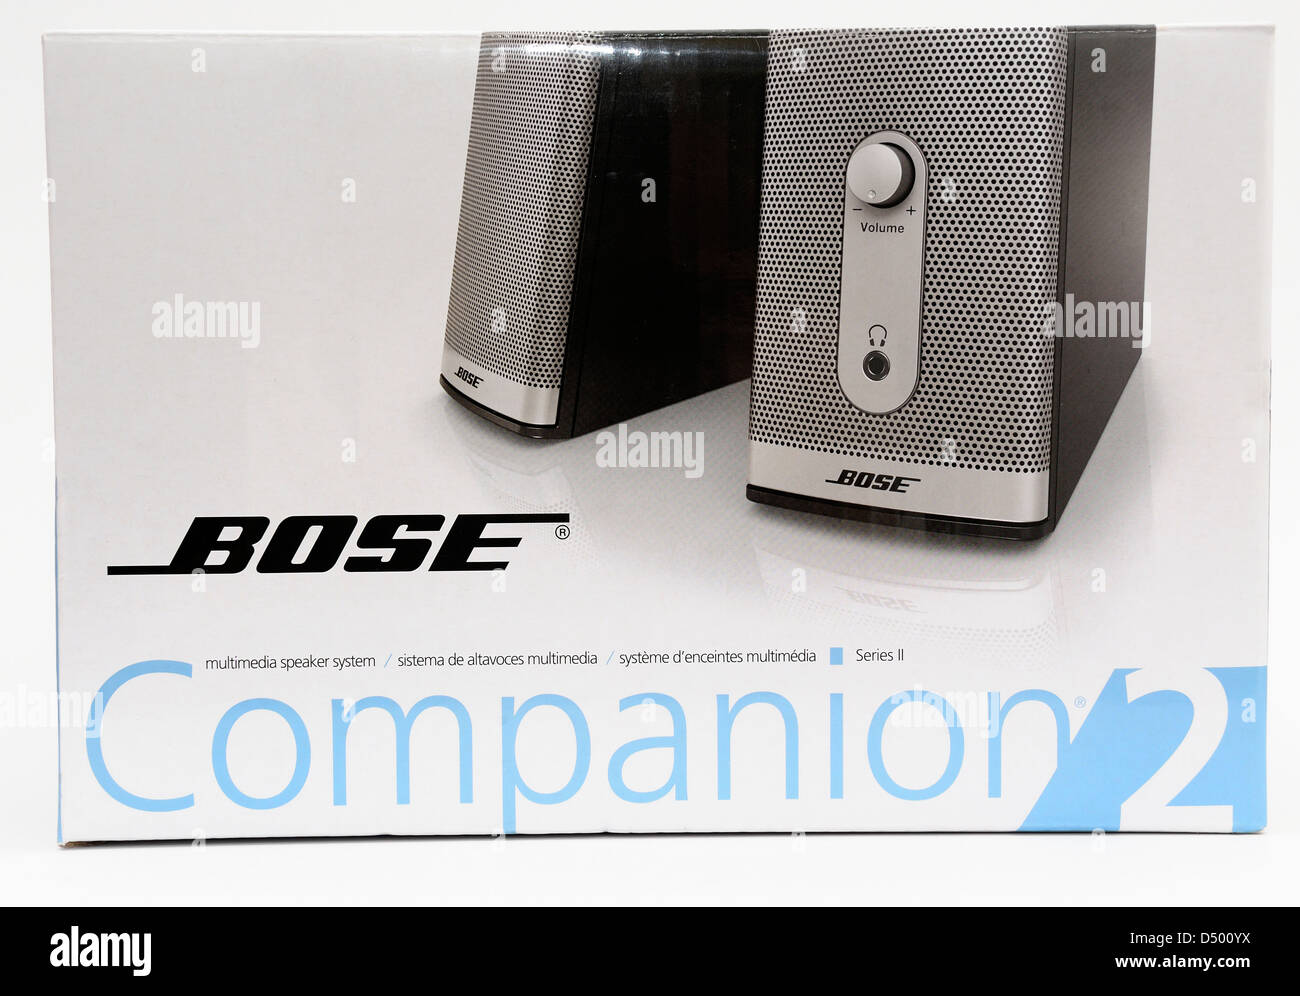 Bose companion 2 speakers - Stock Image